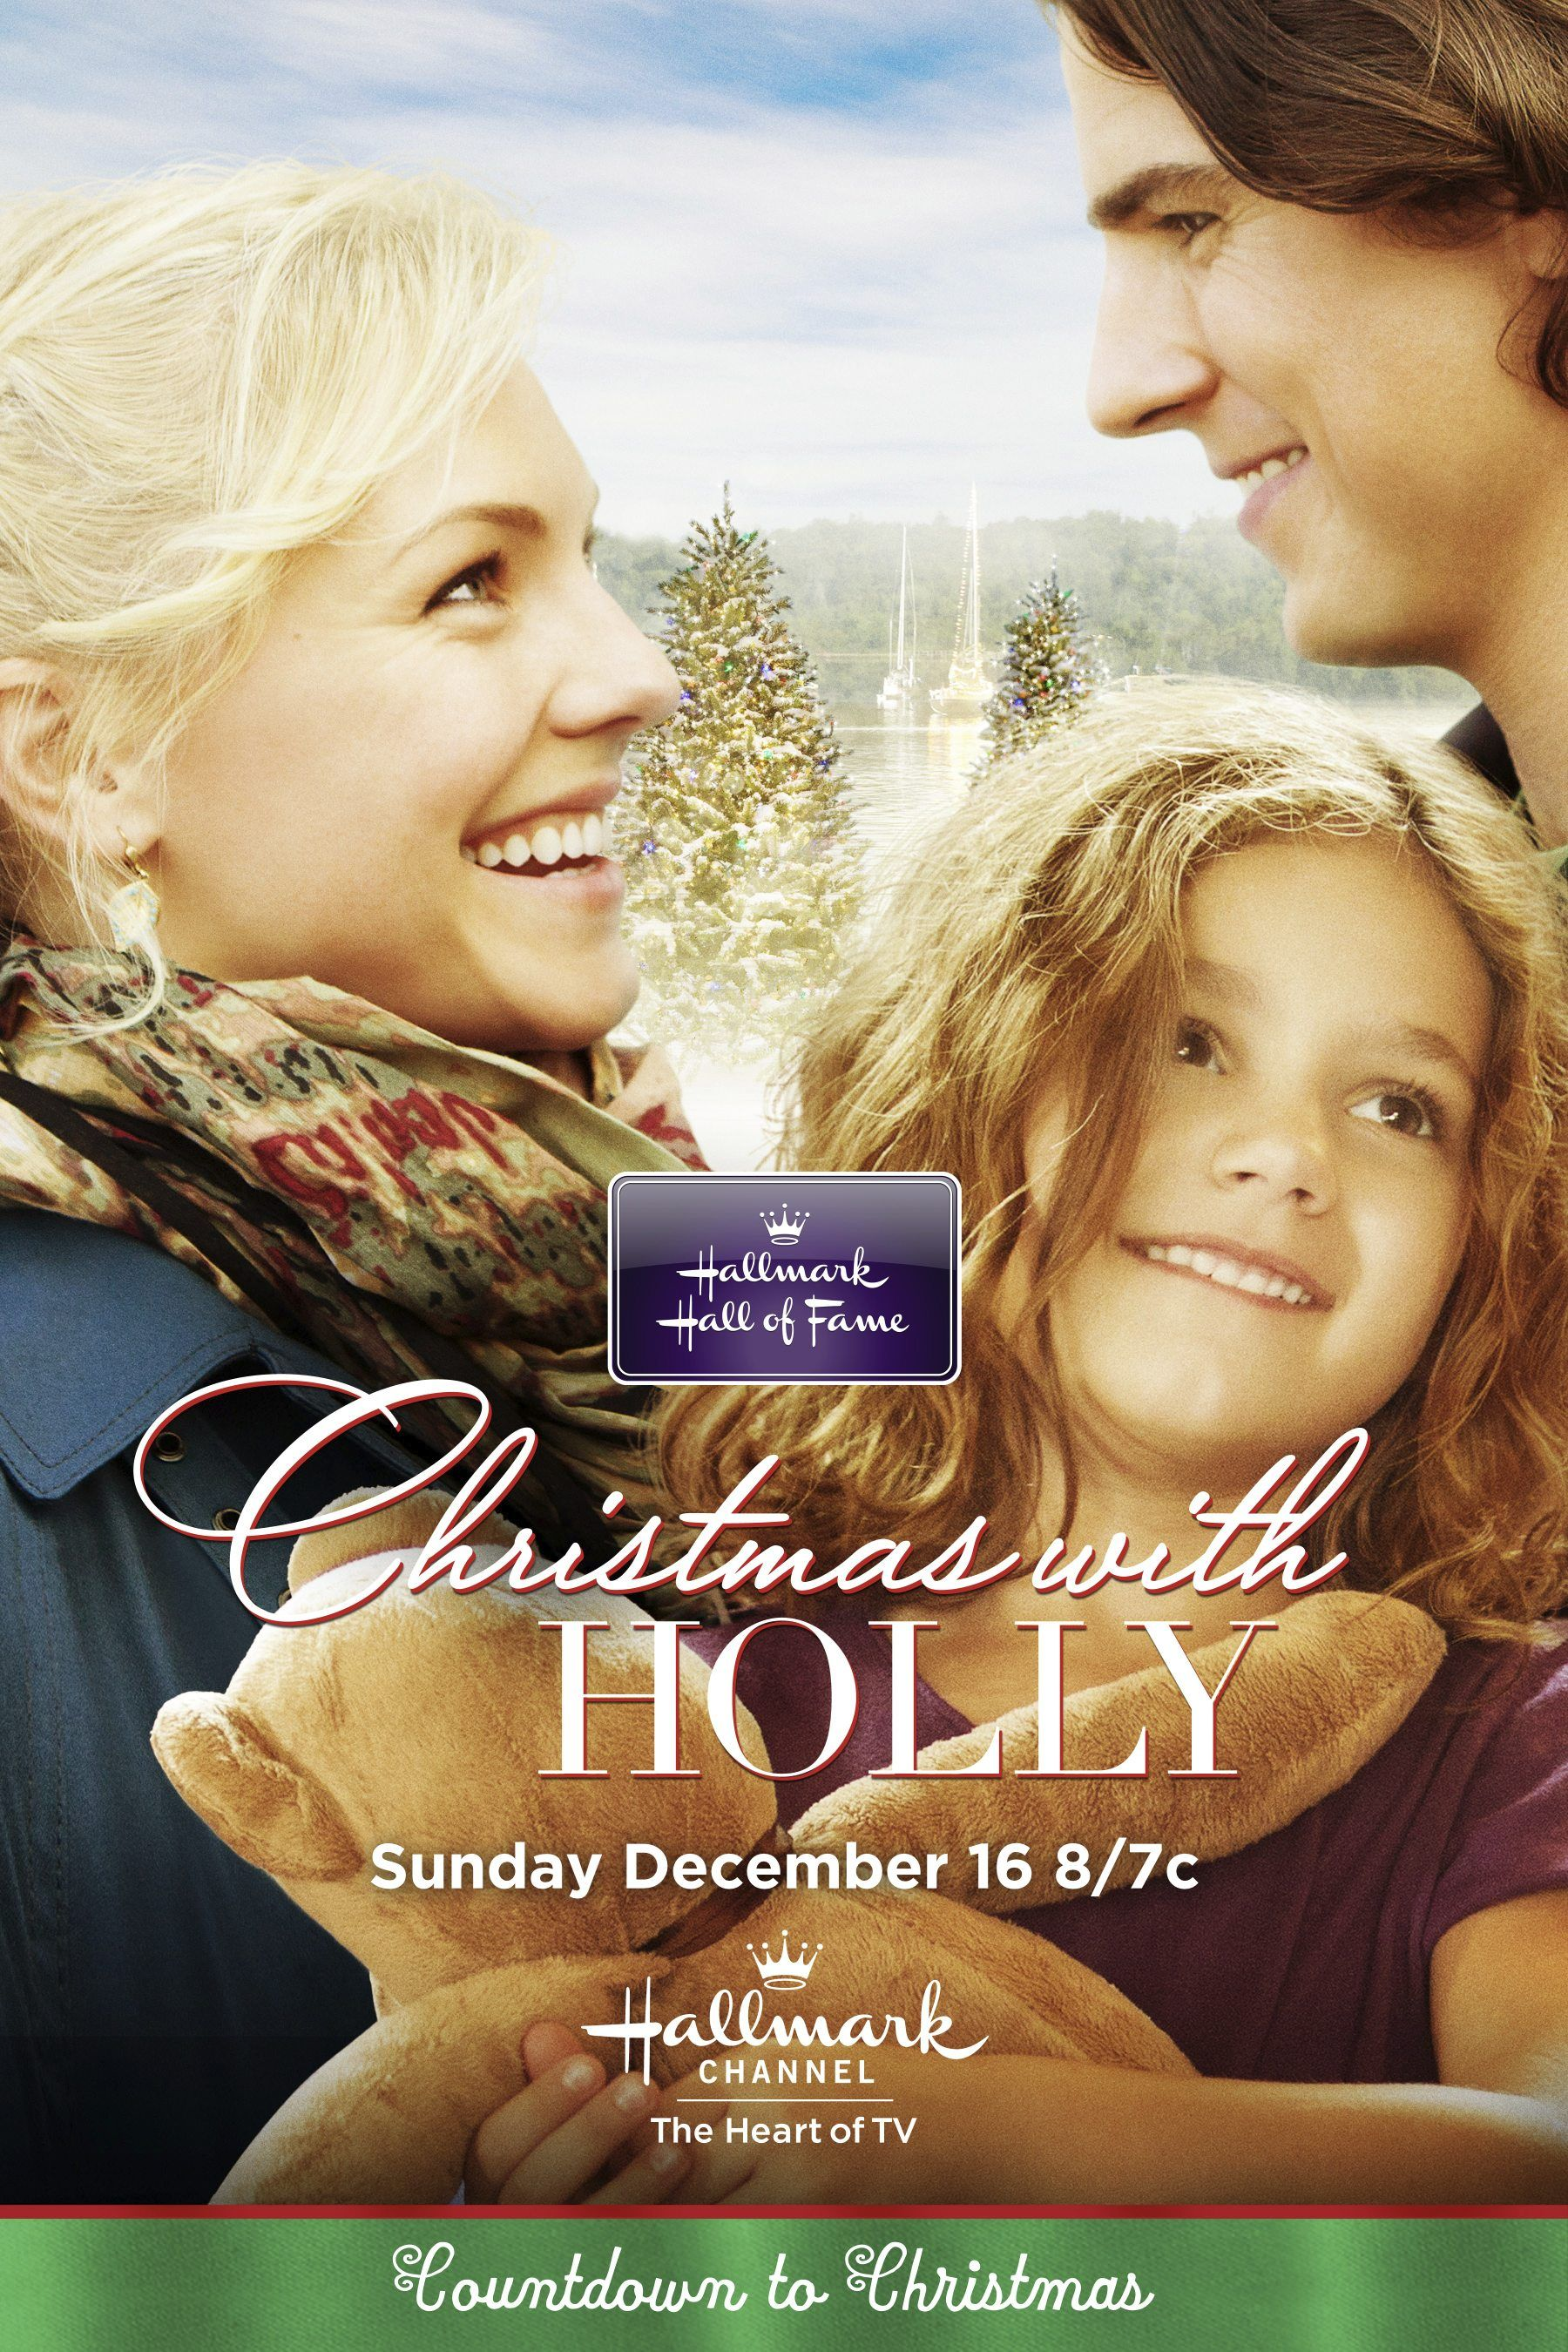 A U.S. Cable Premiere Event! Enjoy the Hallmark Hall of